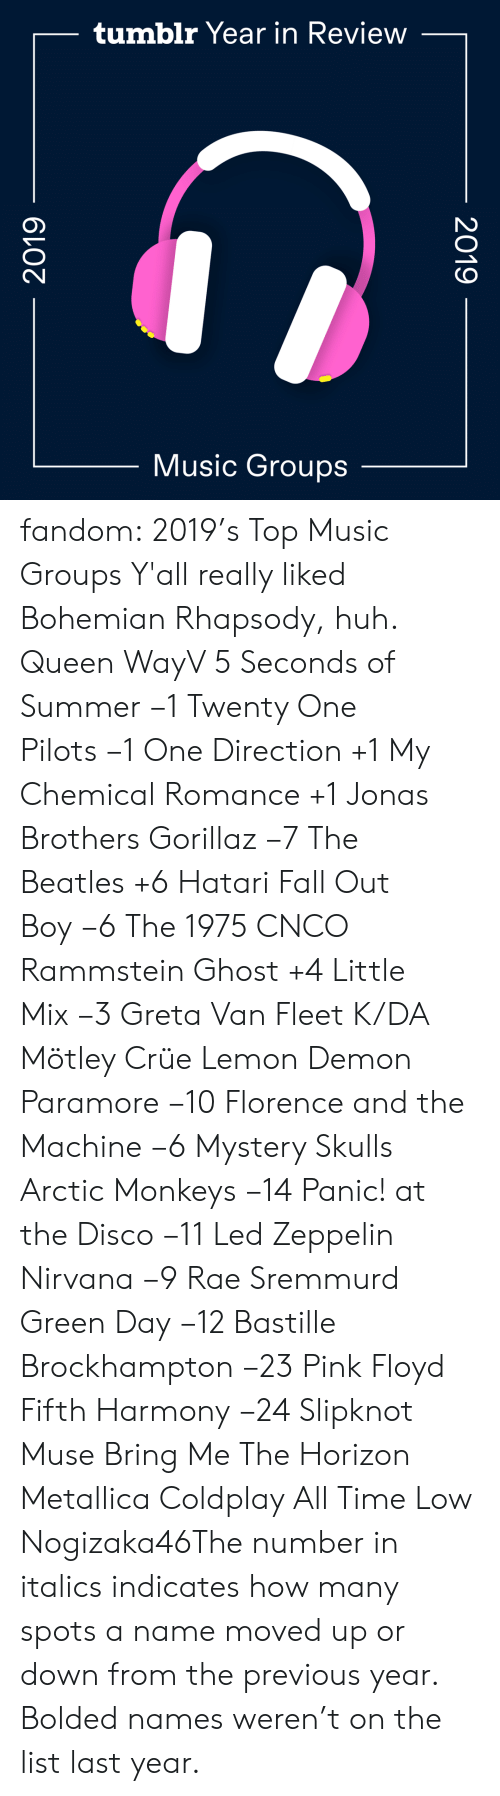 monkeys: tumblr Year in Review  Music Groups  2019  2019 fandom:  2019's Top Music Groups  Y'all really liked Bohemian Rhapsody, huh.  Queen  WayV  5 Seconds of Summer −1  Twenty One Pilots −1  One Direction +1  My Chemical Romance +1  Jonas Brothers  Gorillaz −7  The Beatles +6  Hatari  Fall Out Boy −6  The 1975  CNCO  Rammstein  Ghost +4  Little Mix −3  Greta Van Fleet  K/DA  Mötley Crüe  Lemon Demon  Paramore −10  Florence and the Machine −6  Mystery Skulls  Arctic Monkeys −14  Panic! at the Disco −11  Led Zeppelin   Nirvana −9  Rae Sremmurd  Green Day −12  Bastille  Brockhampton −23  Pink Floyd  Fifth Harmony −24  Slipknot  Muse  Bring Me The Horizon  Metallica  Coldplay  All Time Low  Nogizaka46The number in italics indicates how many spots a name moved up or down from the previous year. Bolded names weren't on the list last year.